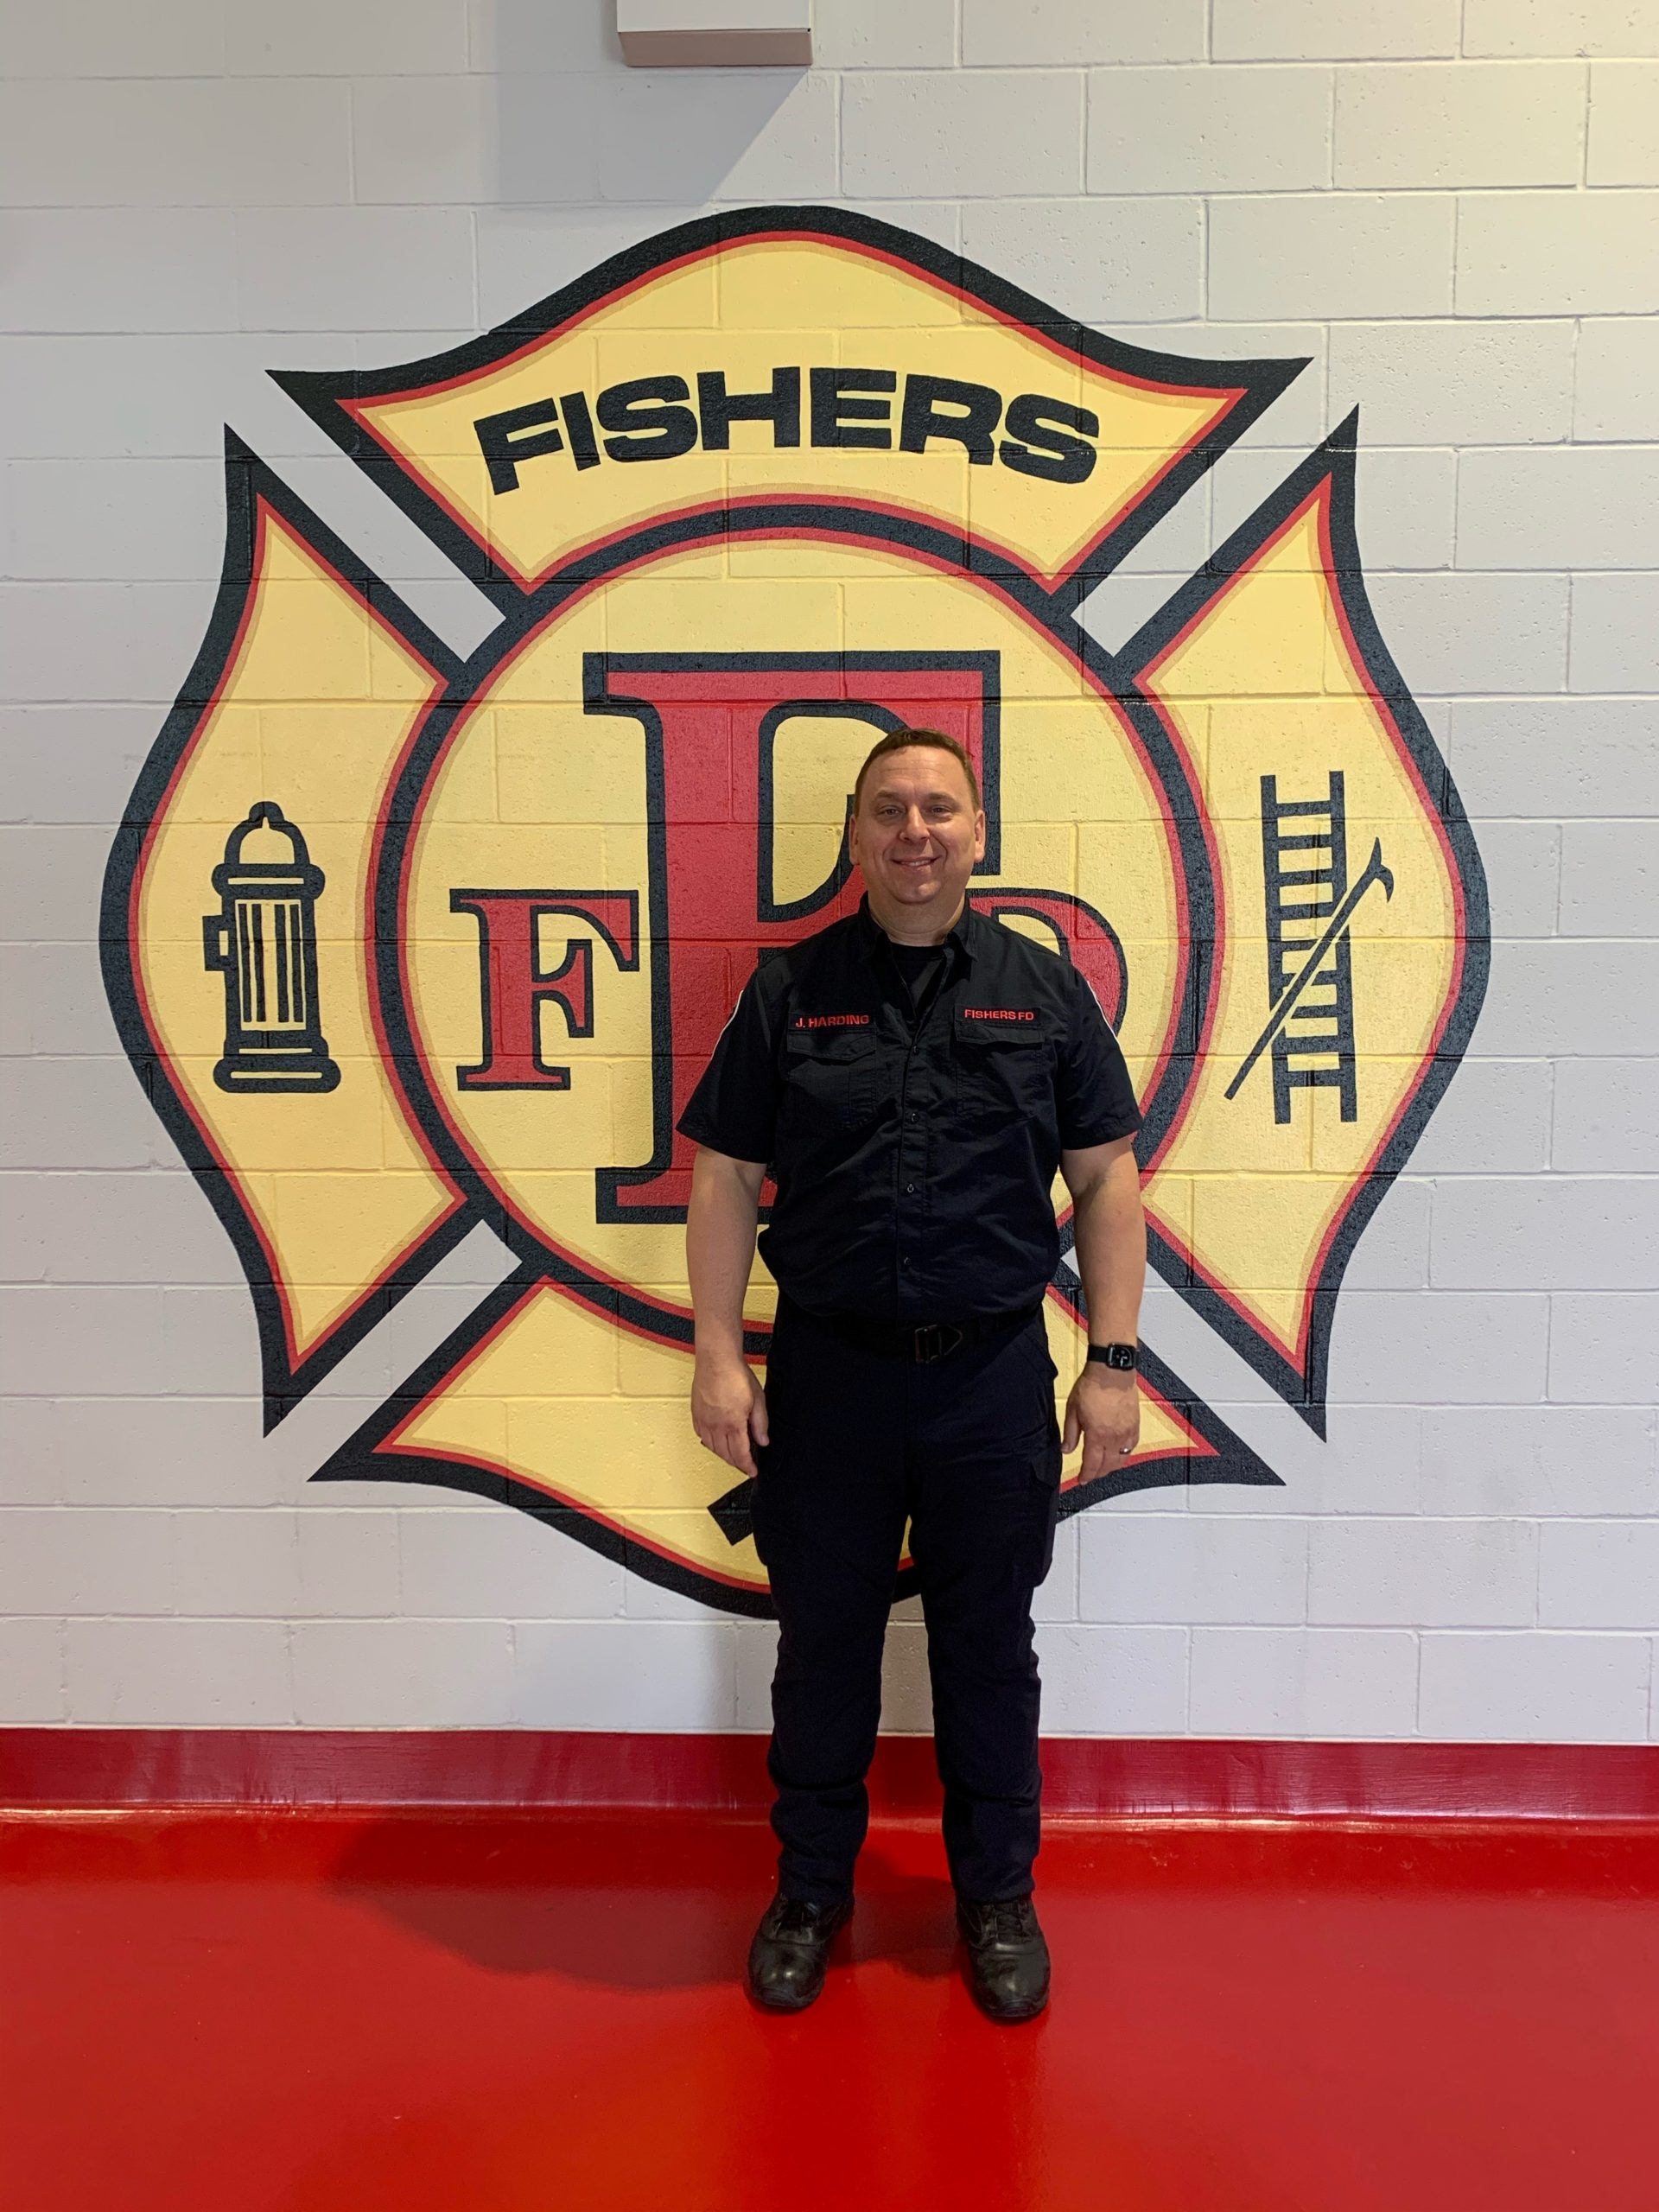 joe harding standing in front of the fishers fire department logo